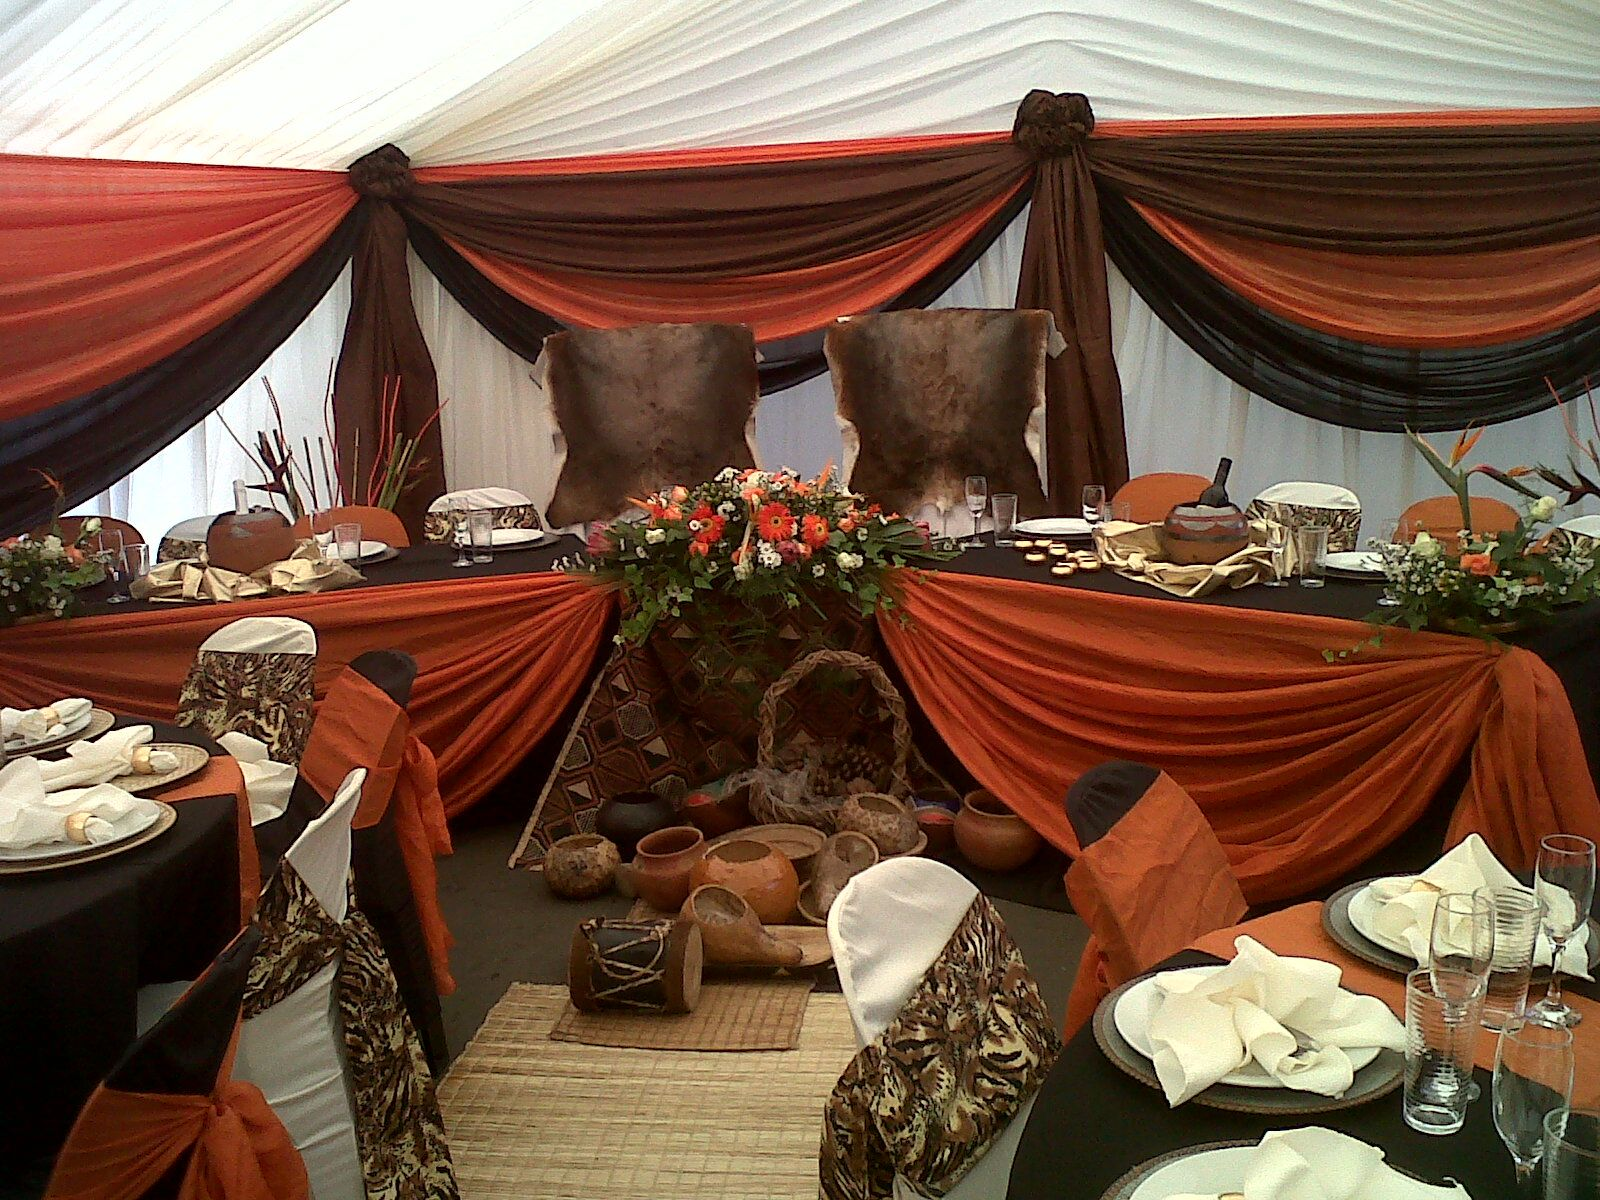 zulu wedding decor pictures - google search | african wedding